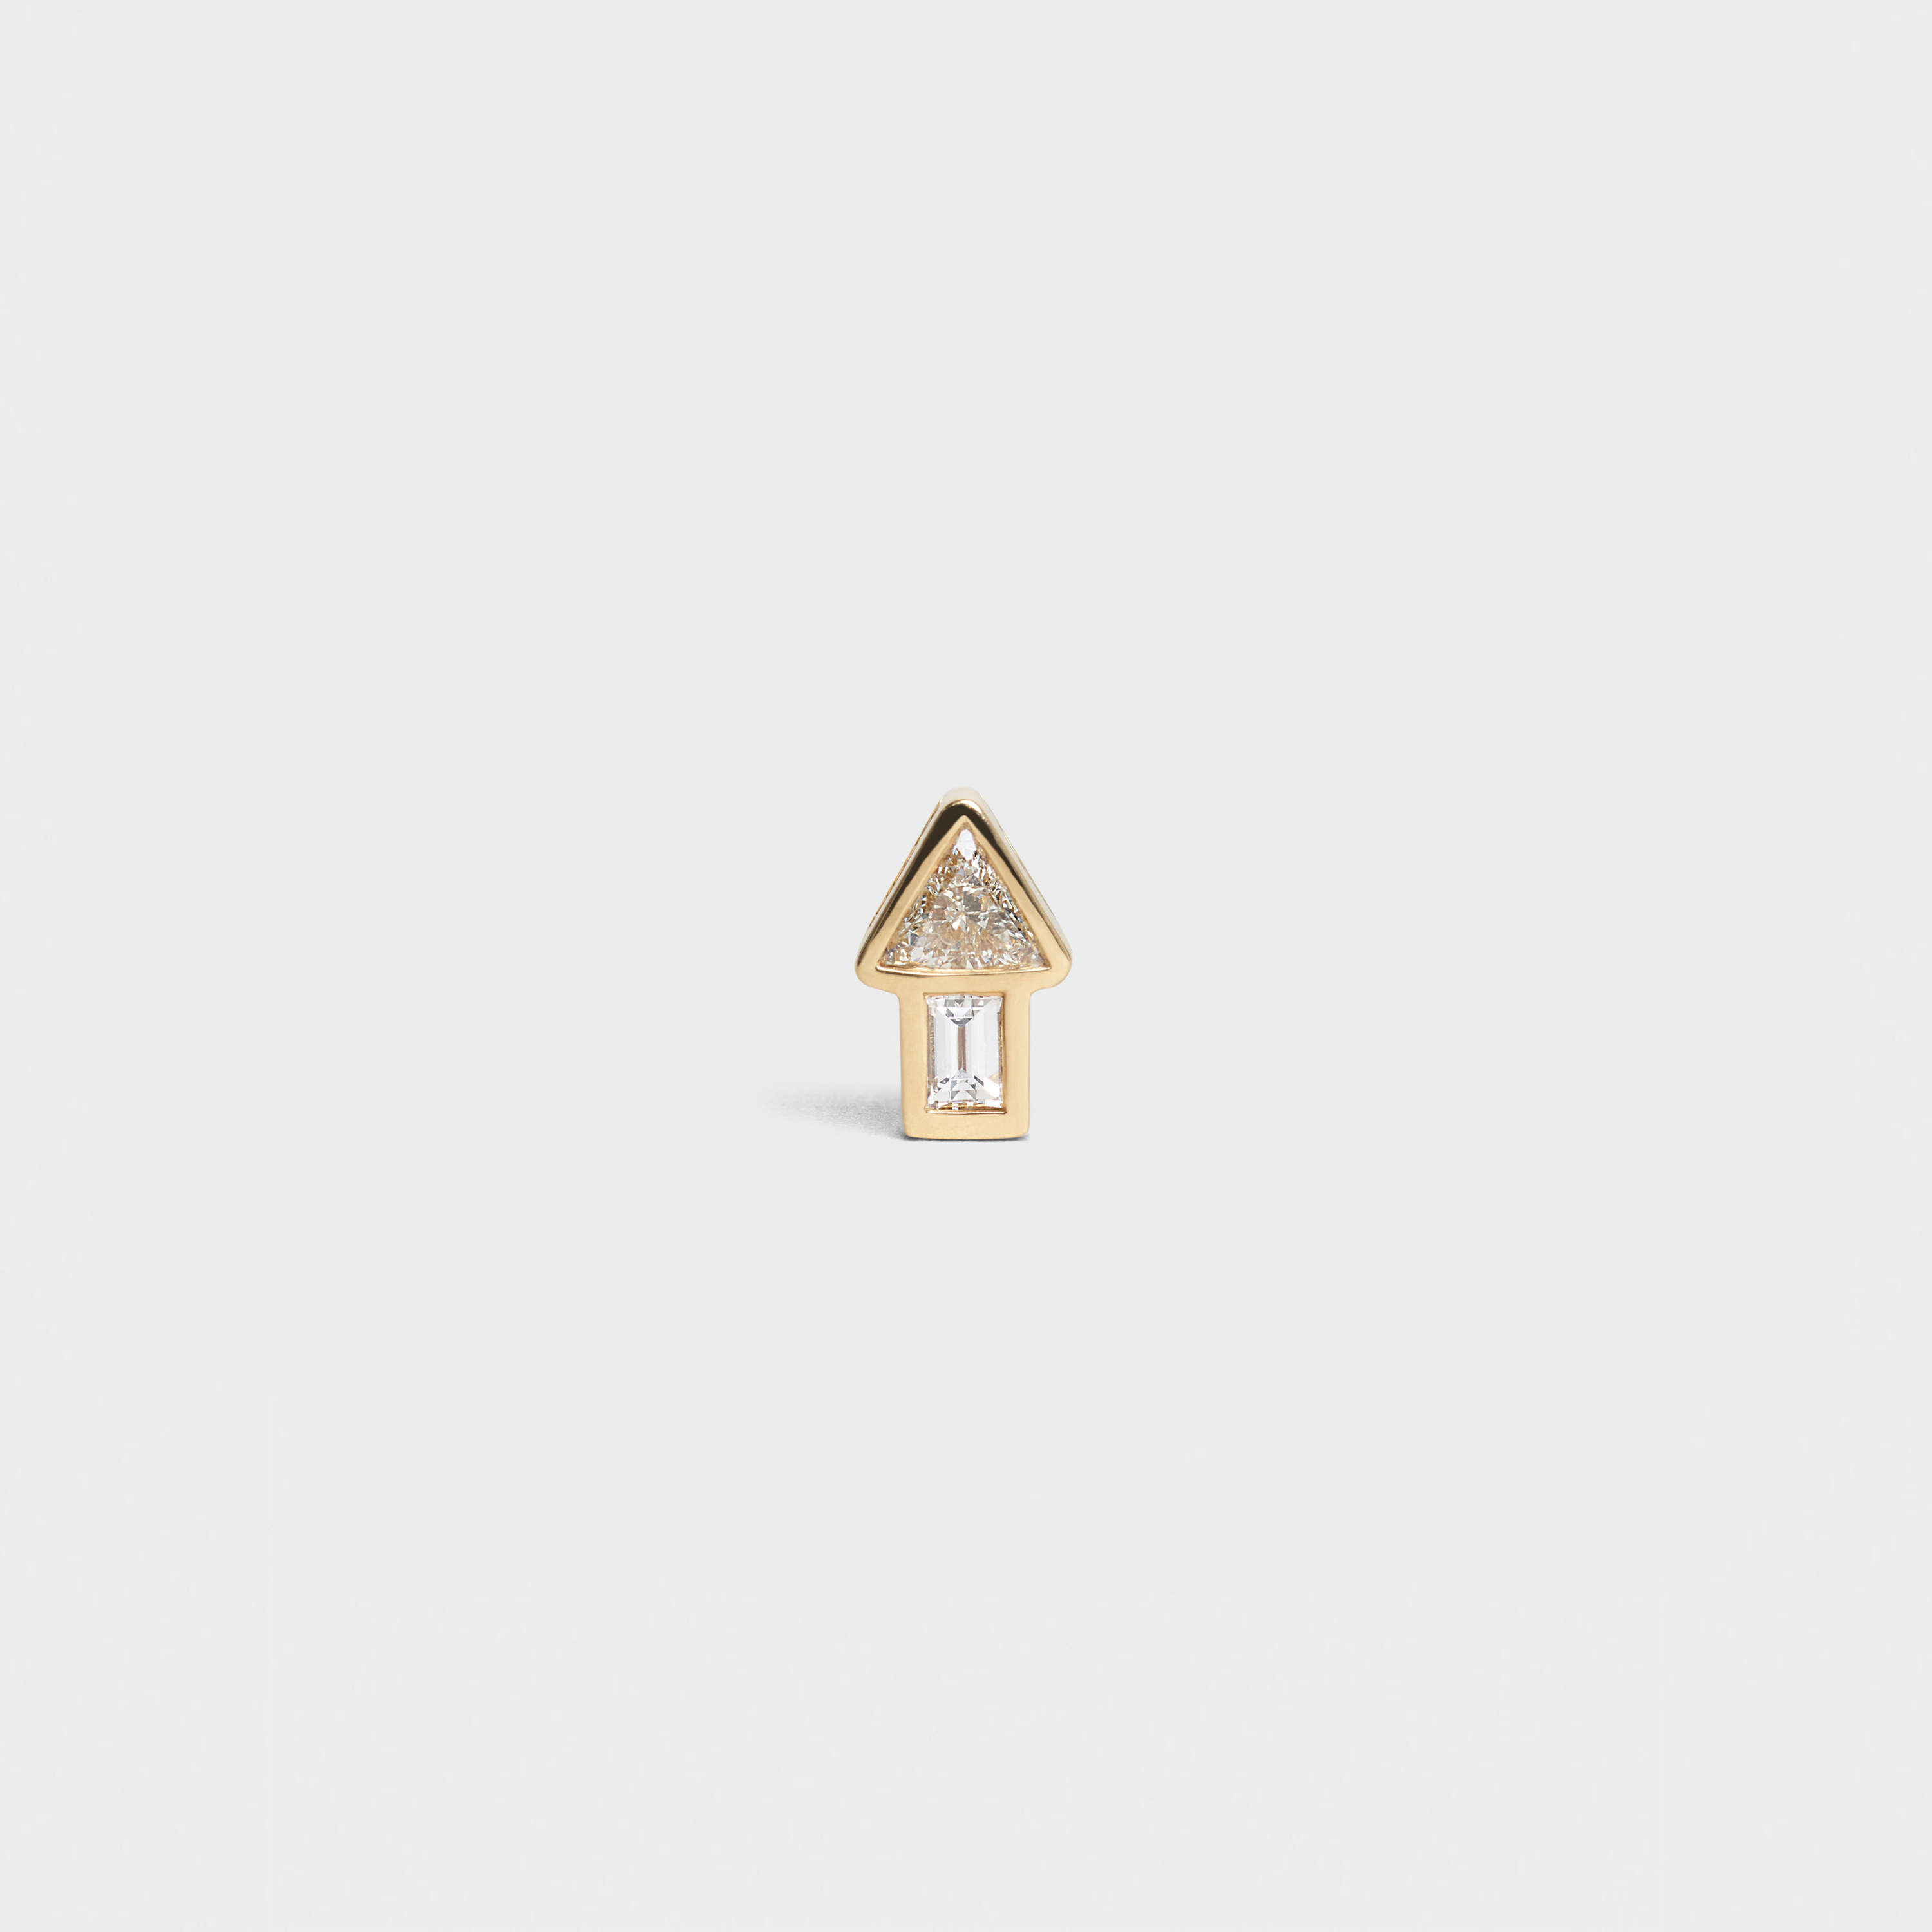 Celine Sentimental Small Arrow Stud in Yellow Gold and Diamond | CELINE